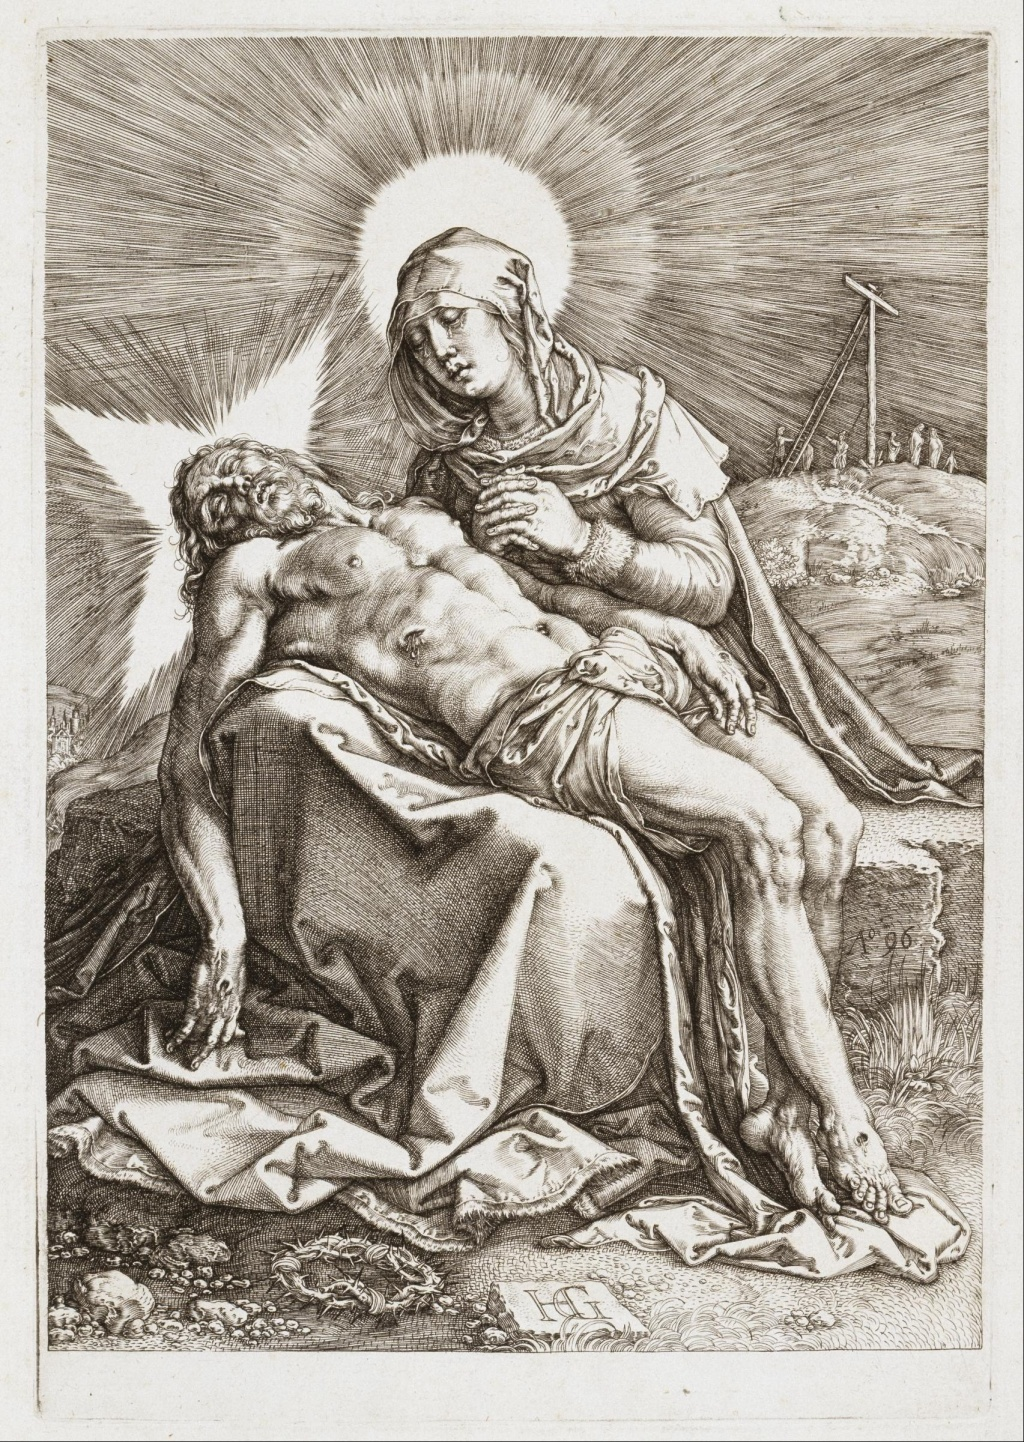 Hendrick Goltzius, The Pieta